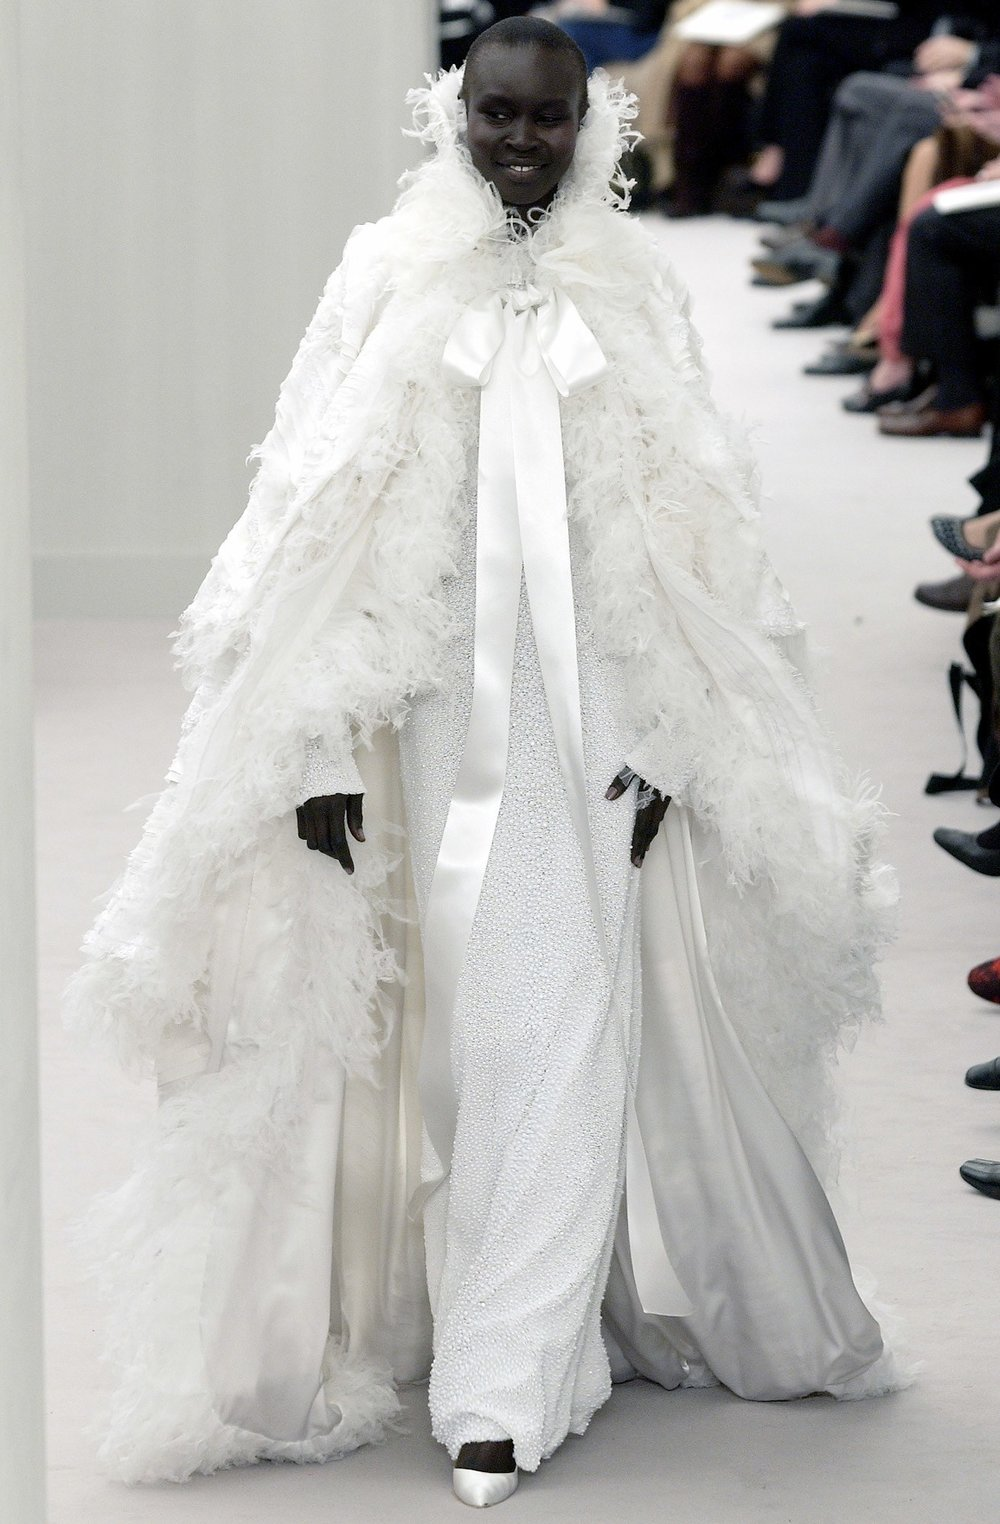 Alek Wek as the bride at the Chanel Haute Couture Spring 2004 show.